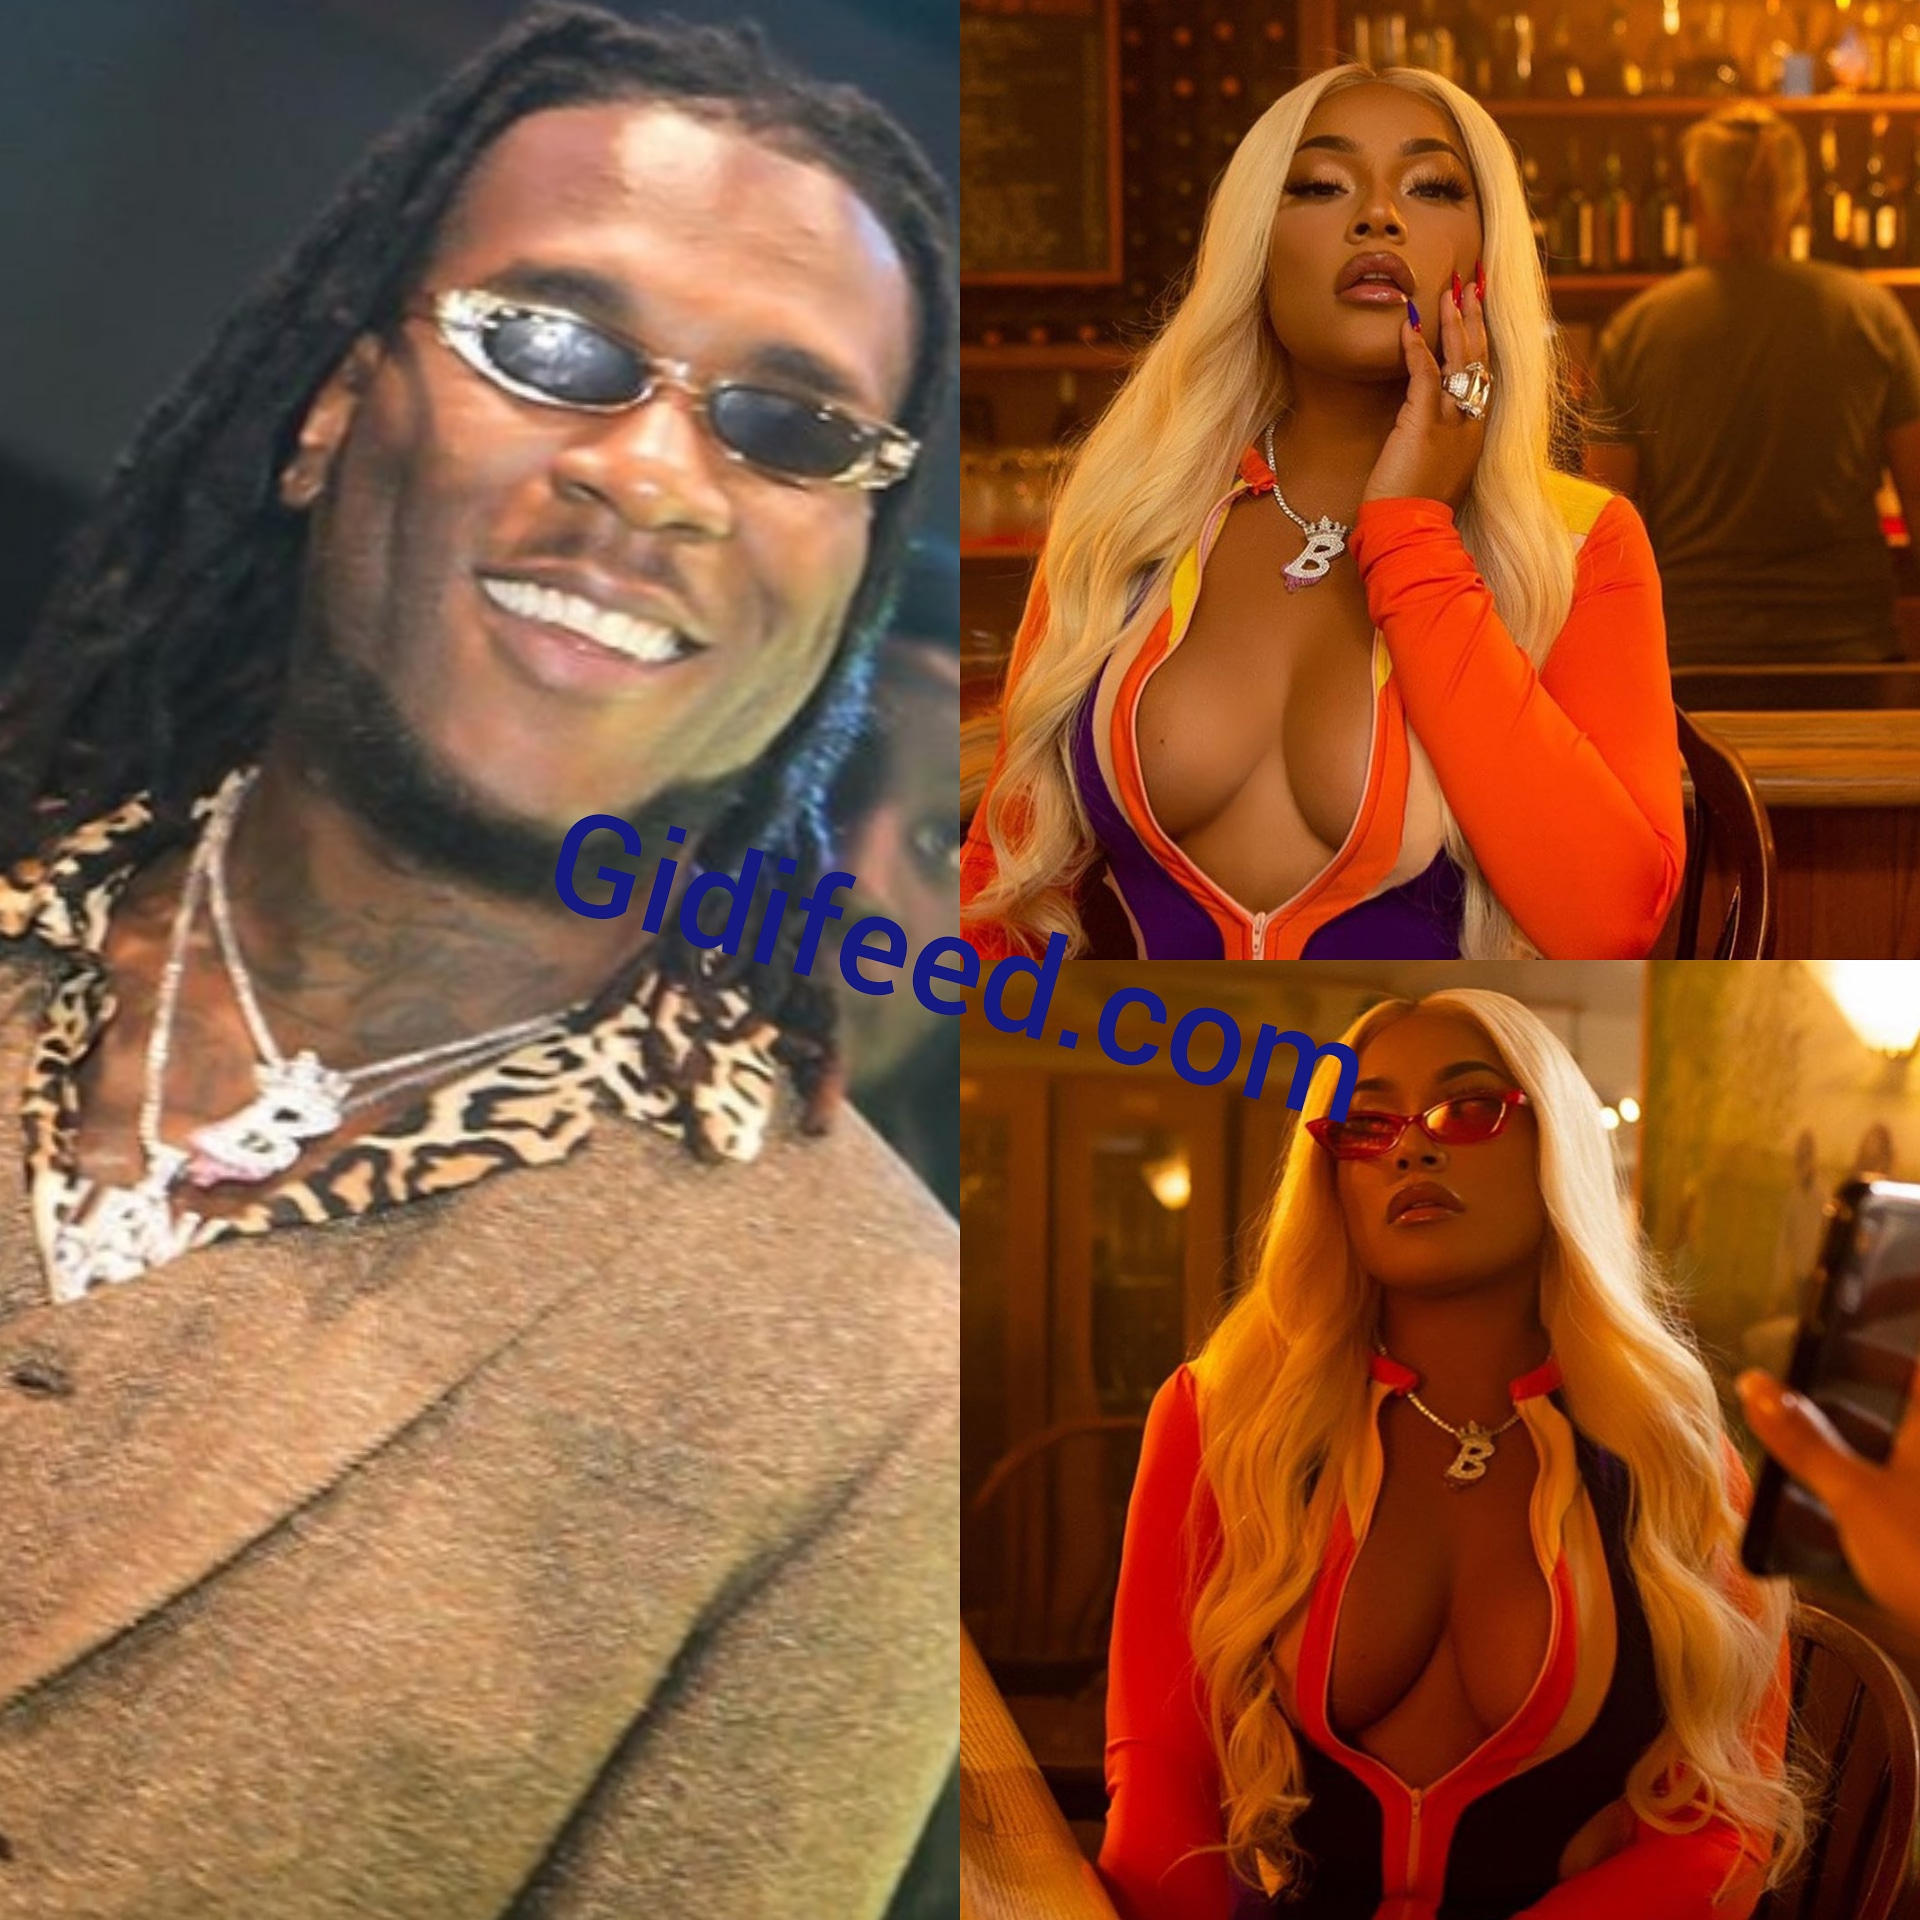 Burna Boy Girlfriend SteffLondon rocks his neckpiece in a music